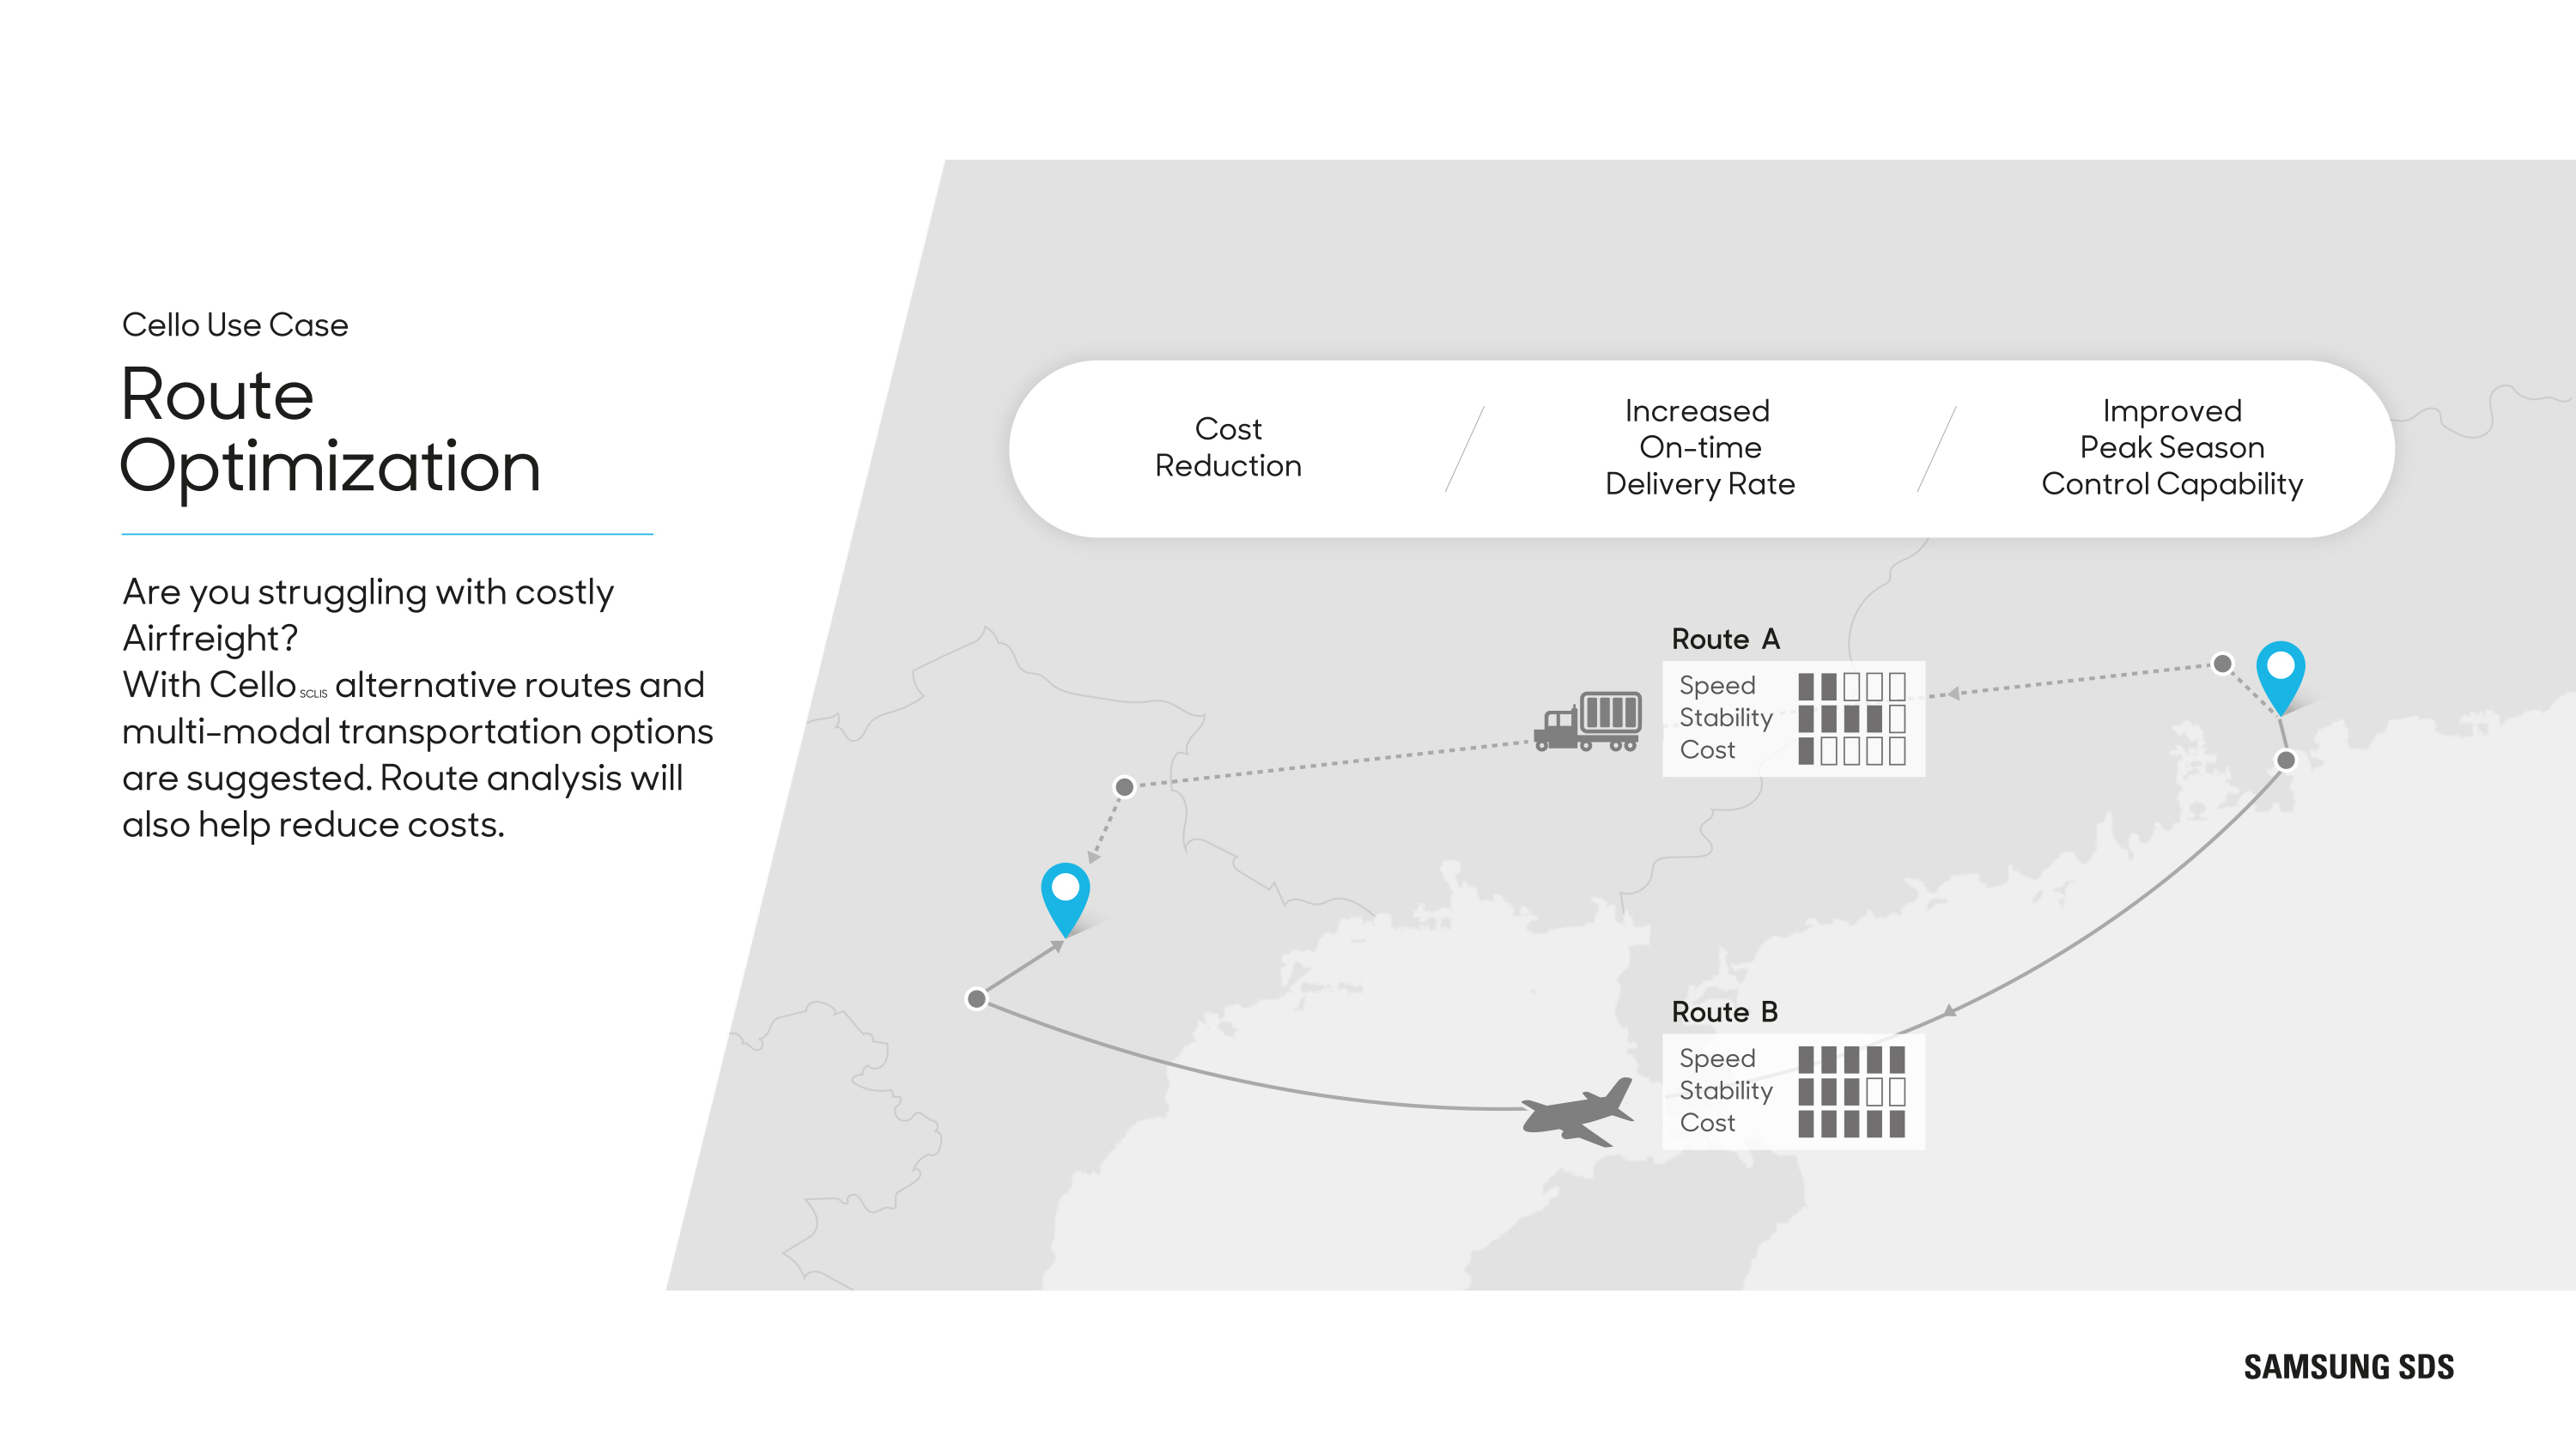 Are you struggling with costly Airfreight? With Cello alternative routes and multi-modal transportation options are suggested. Route analysis will also help reduce costs.